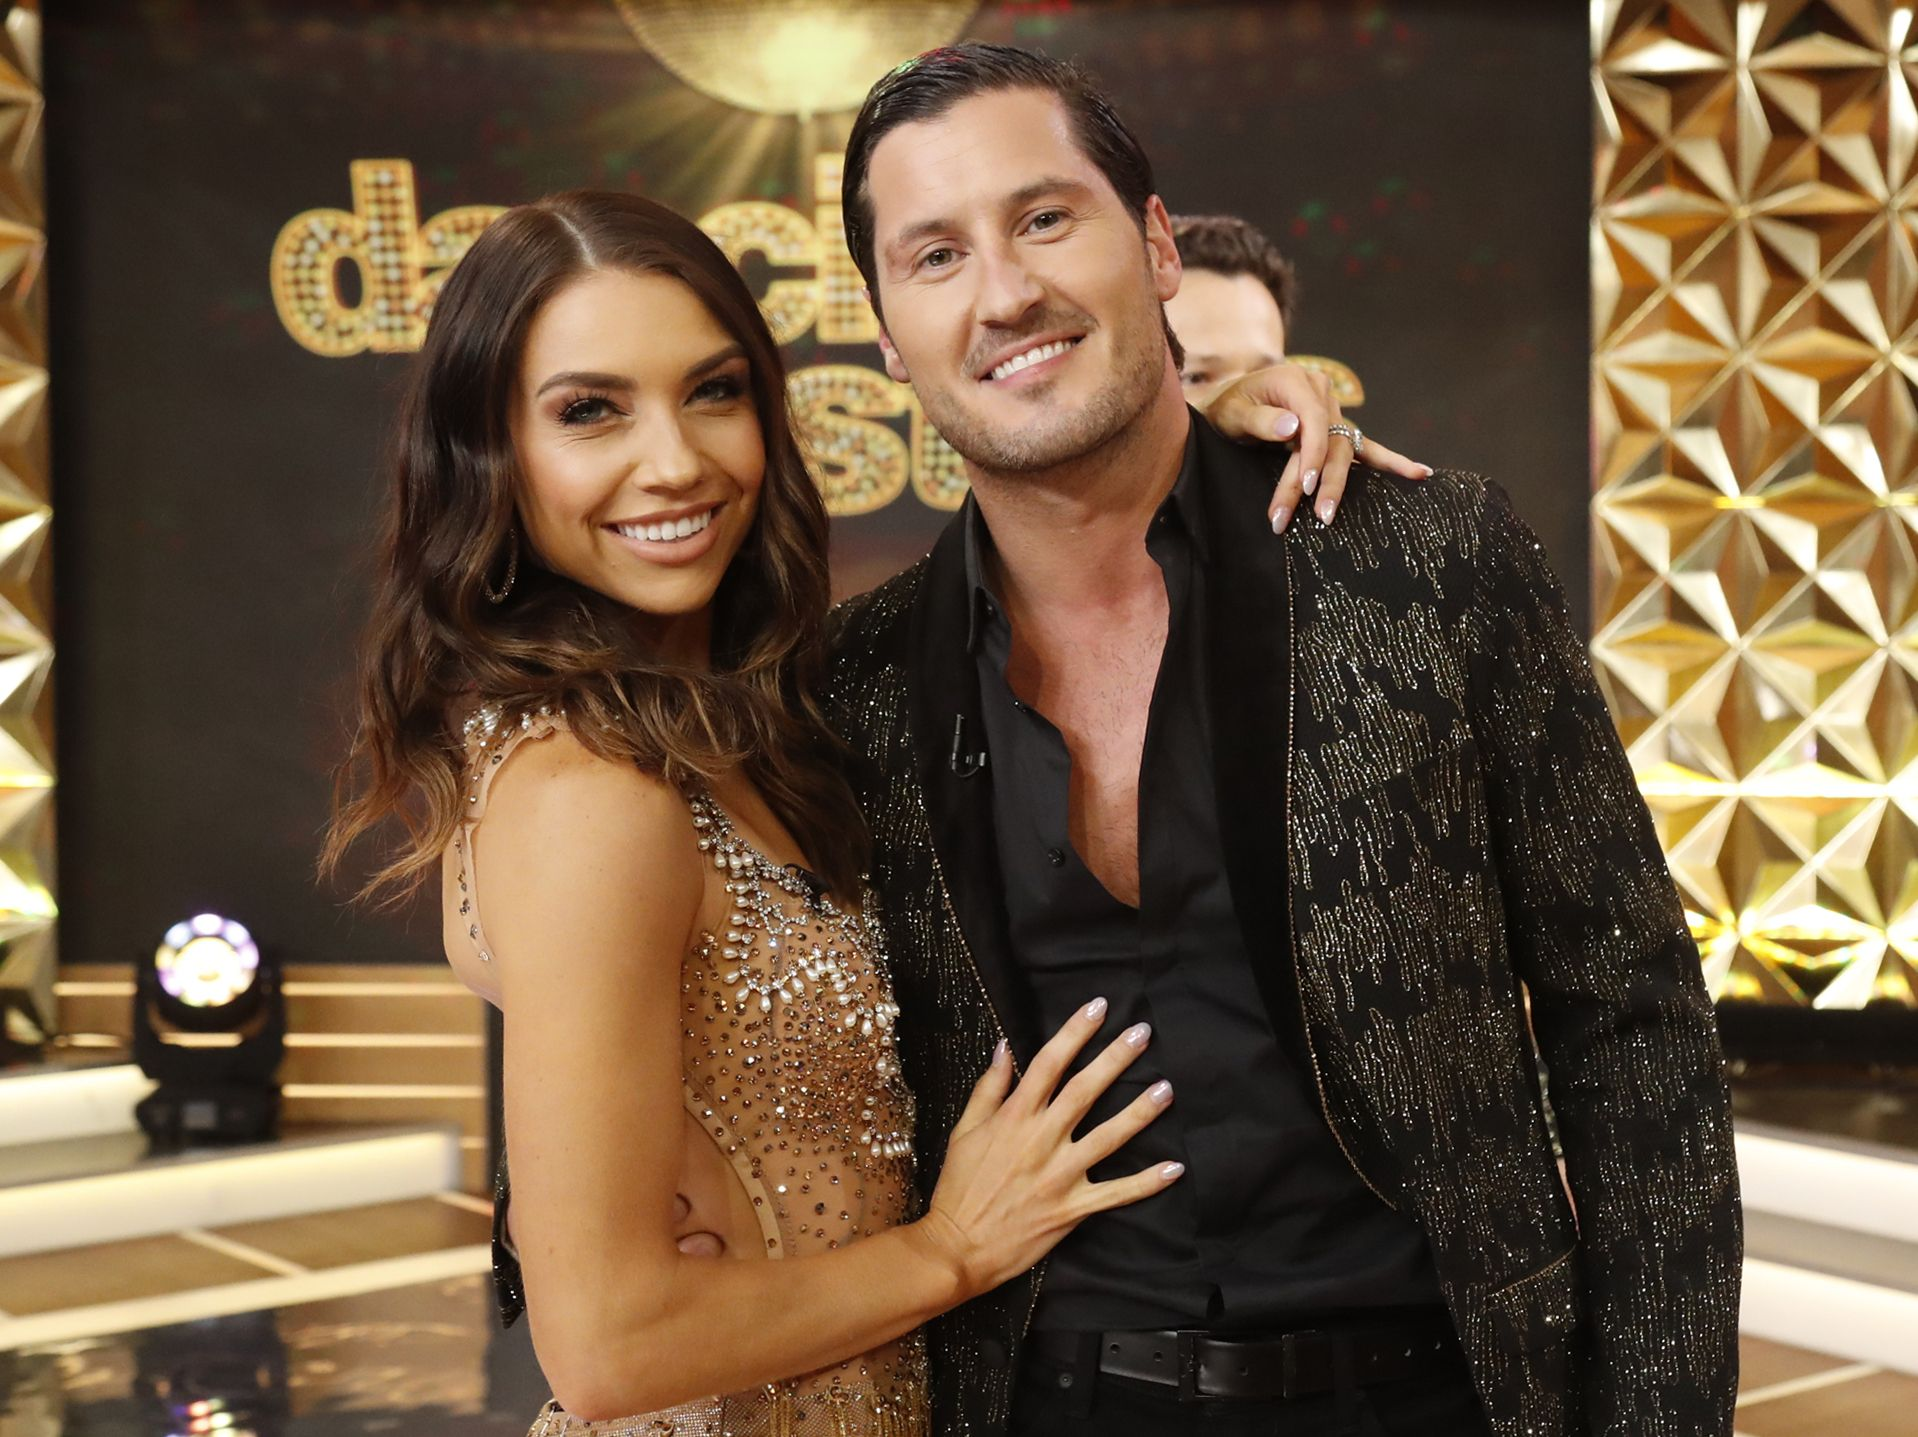 max dwts dating 2021)